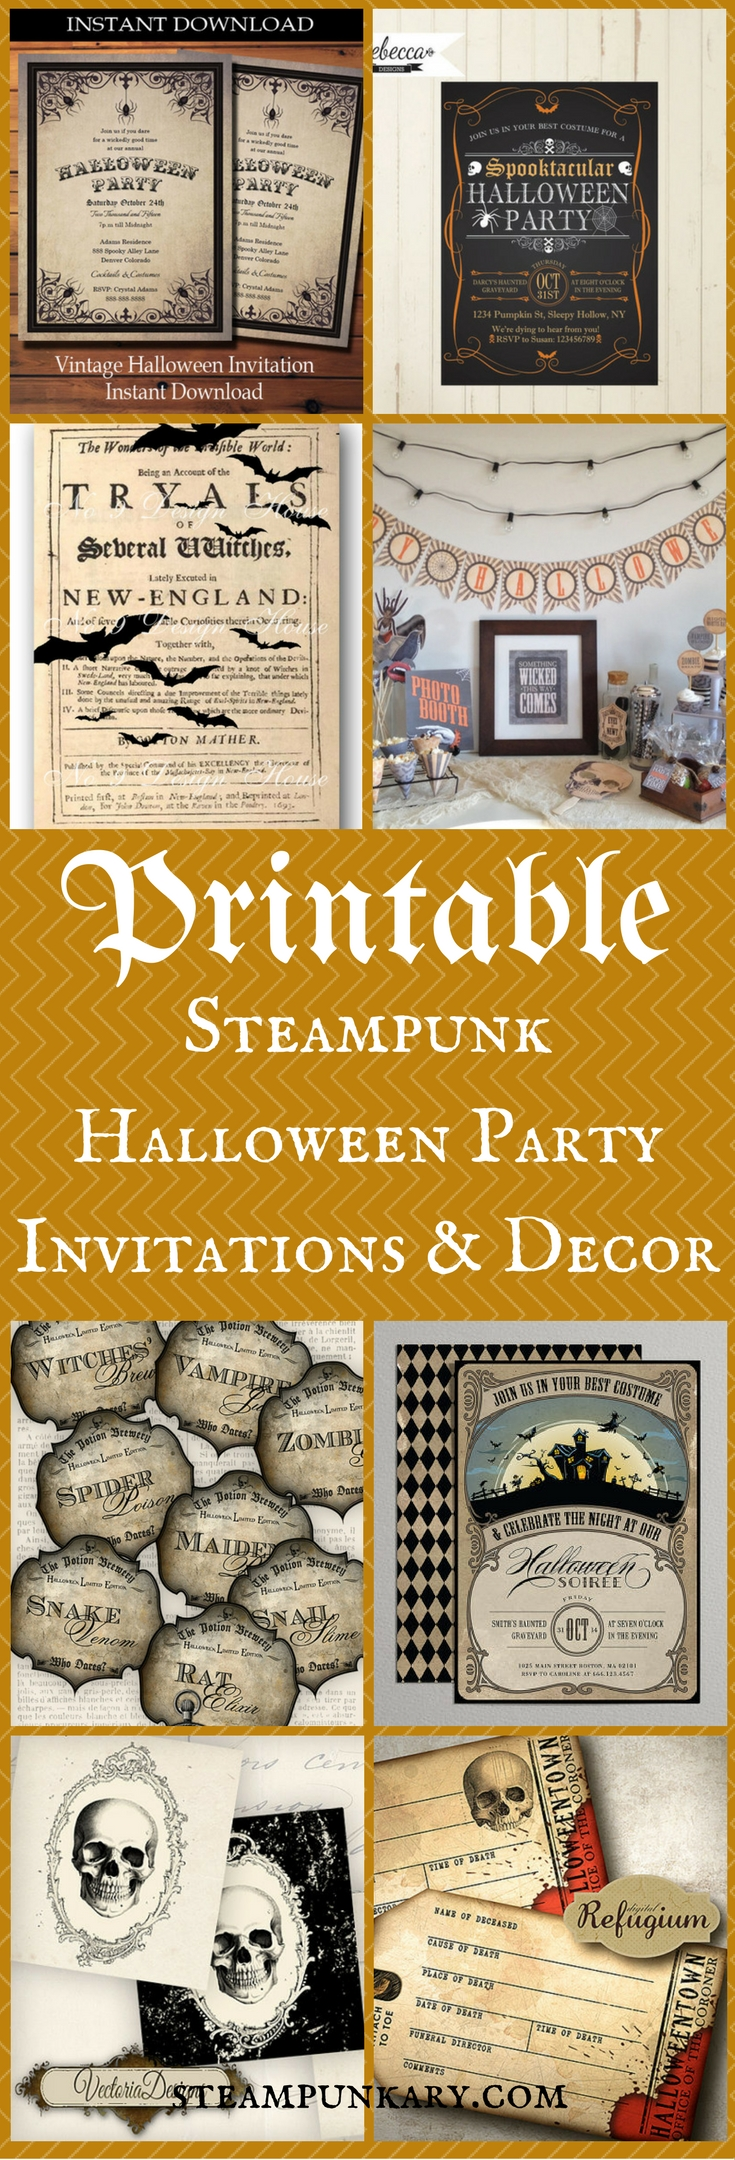 Printable Steampunk Halloween Party Invitations & Decor